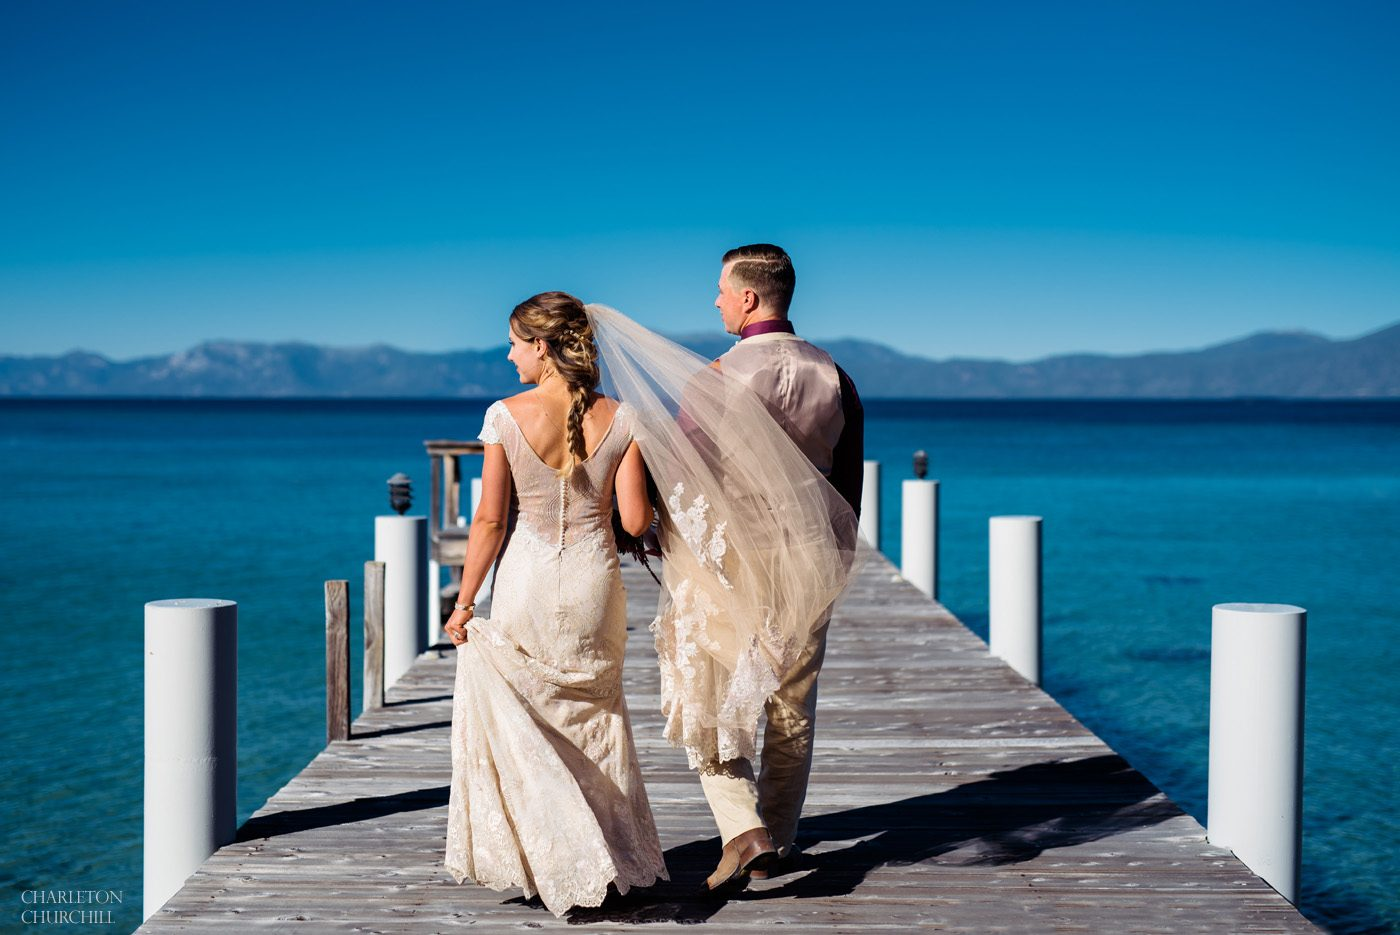 top lake tahoe wedding venues image of couple on dock of lake holding hands